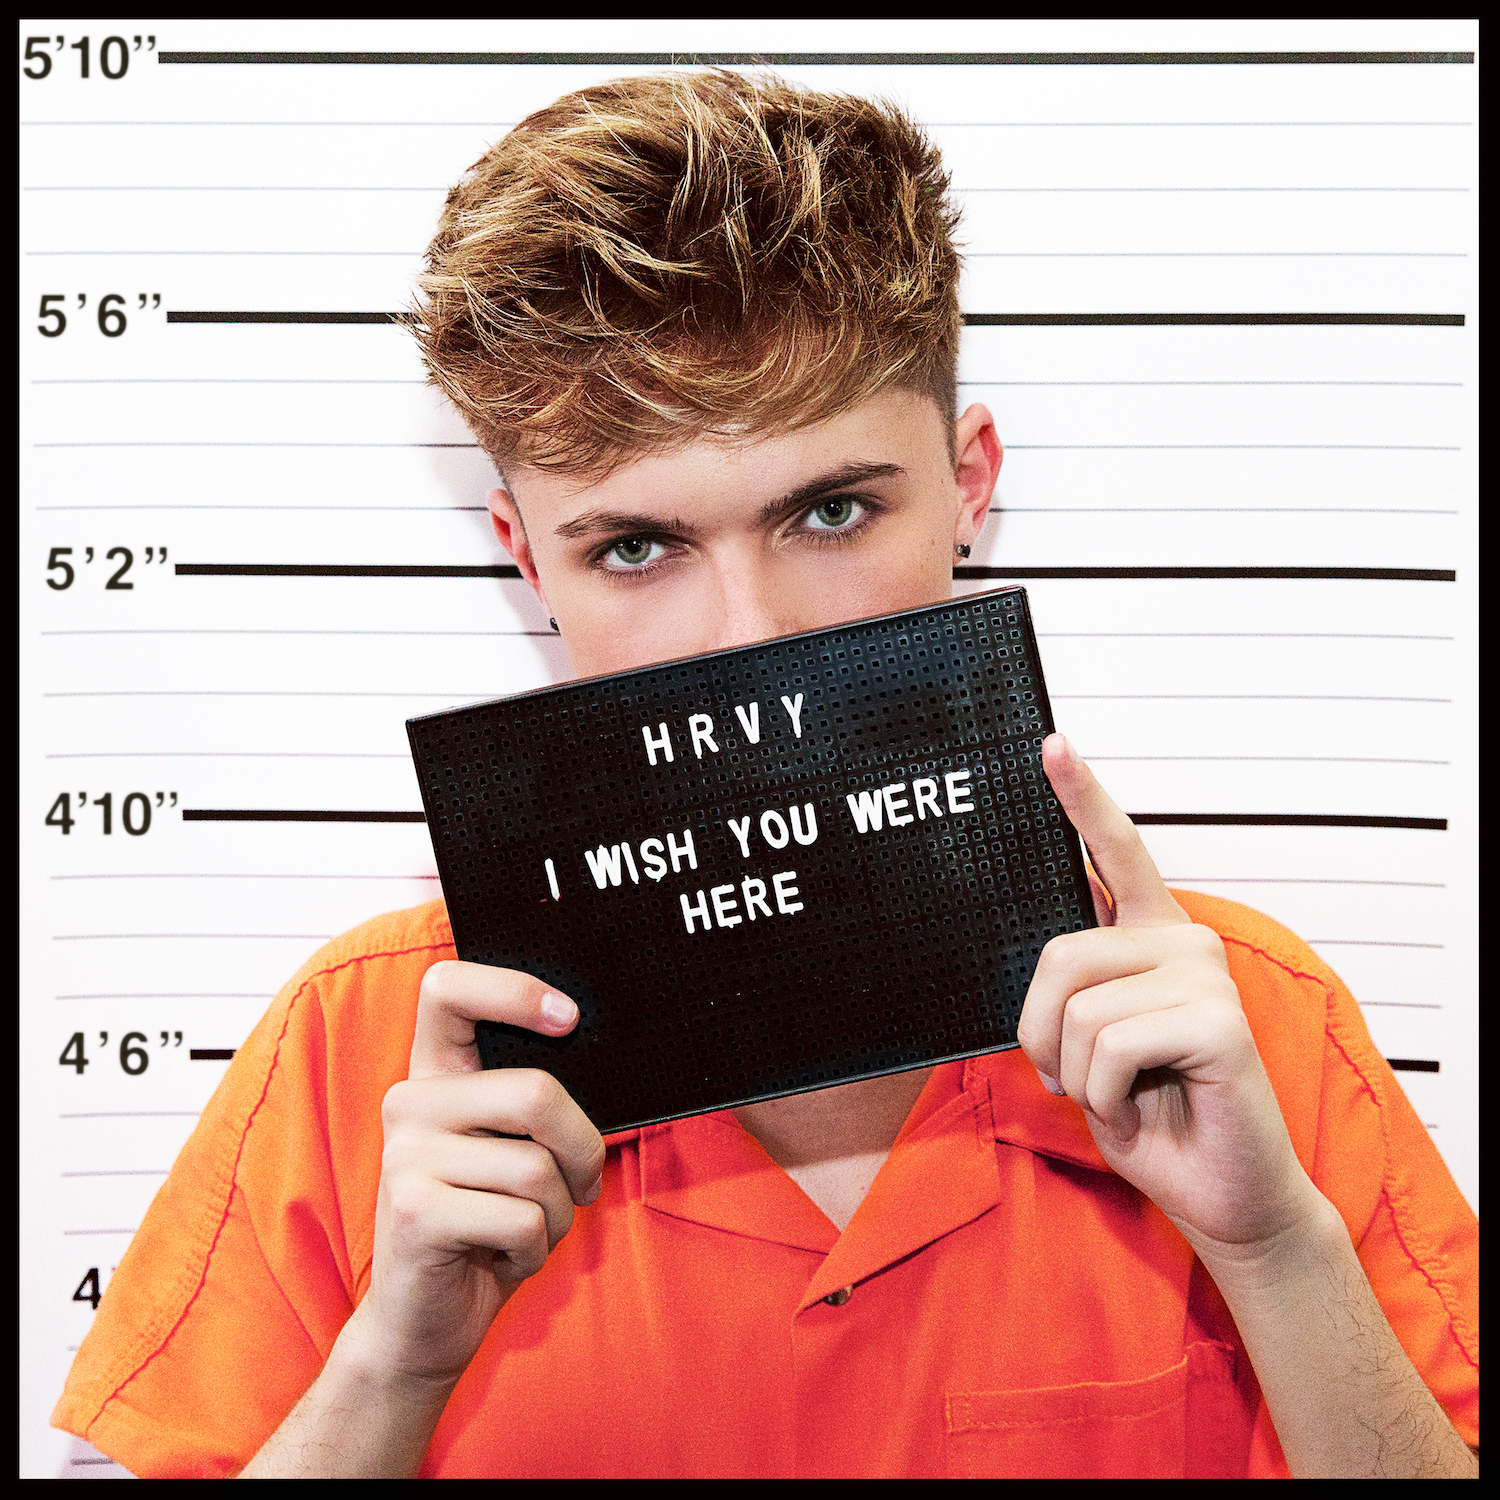 HRVY-I Wish You Were Here.jpg